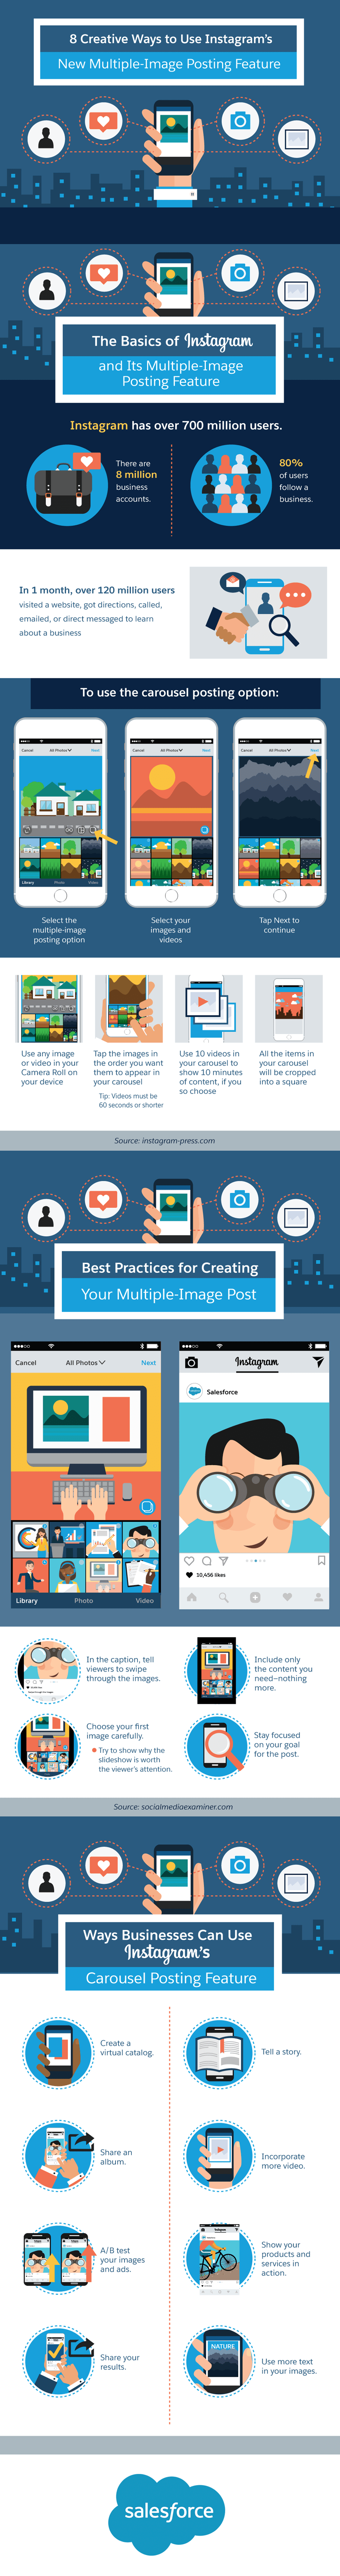 How businesses can use Instagram's carousel infographic_The Instagram carousel multi-image posting feature can drive great value for brands. Check out this post by Dan Purvis & infographic to find out how & why!